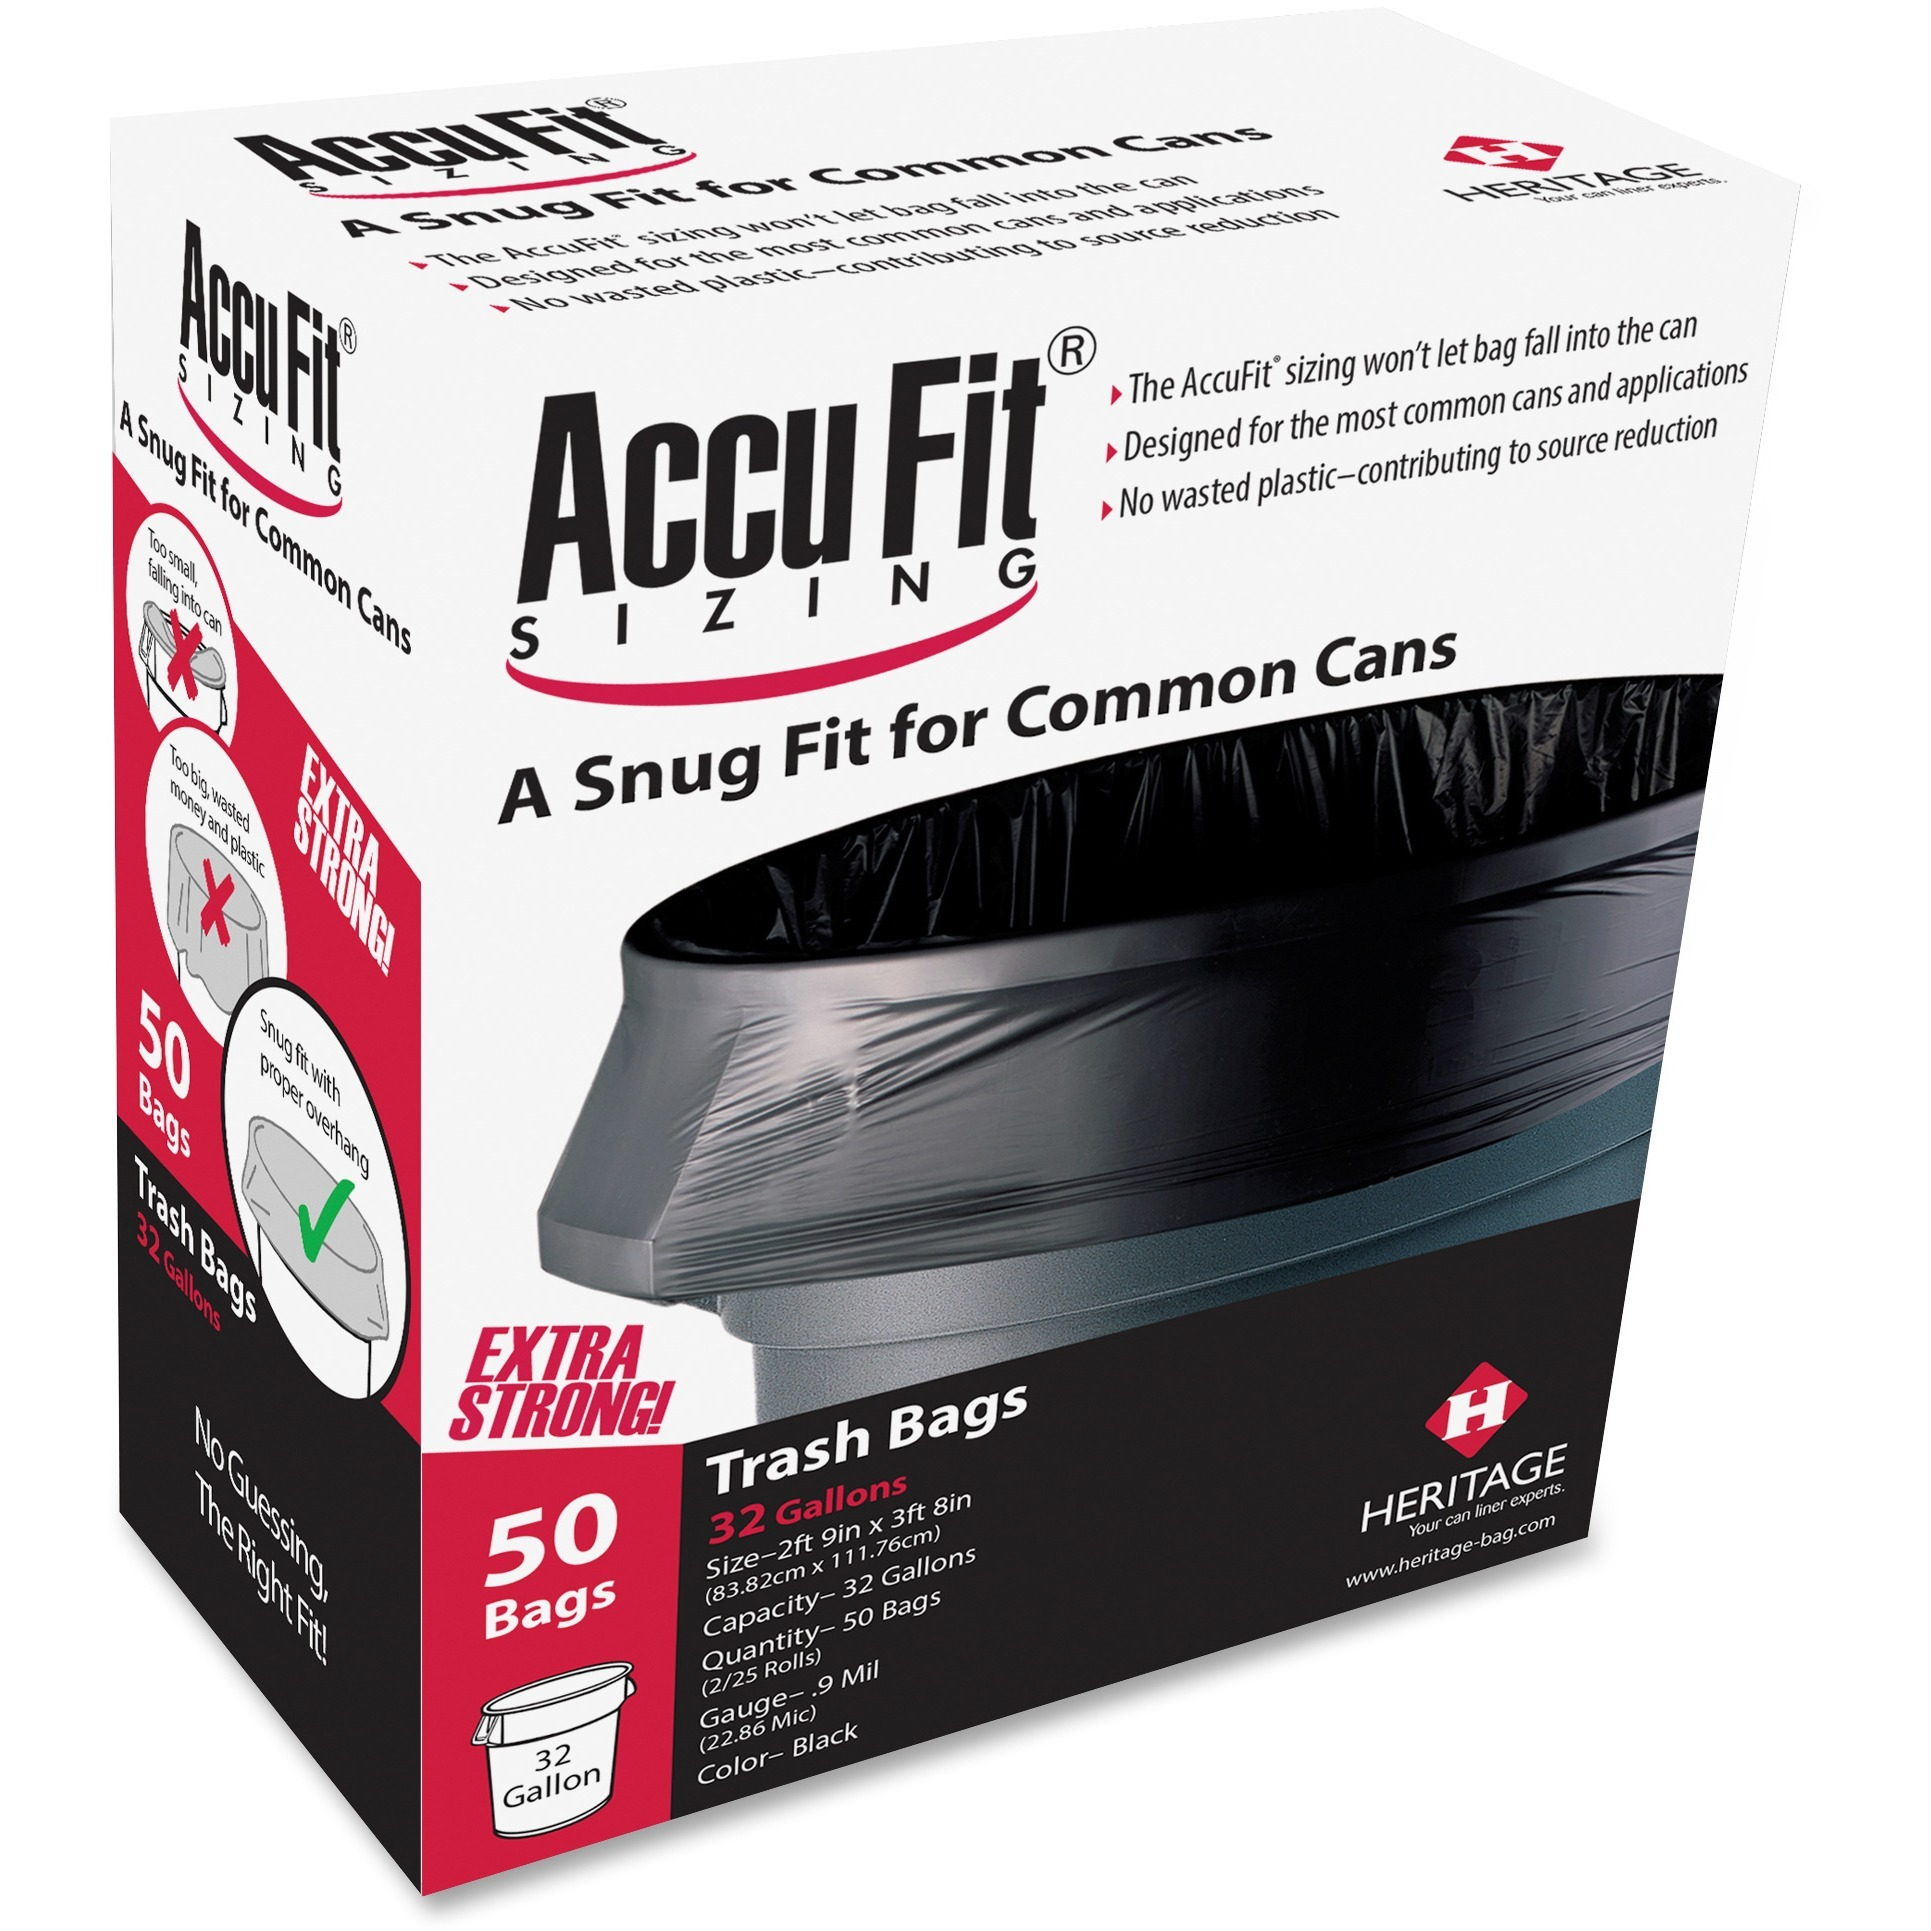 Heritage, HERH6644TKRC1, Accufit Reprime 32 Gallon Can Liners, 50 / Box, Black